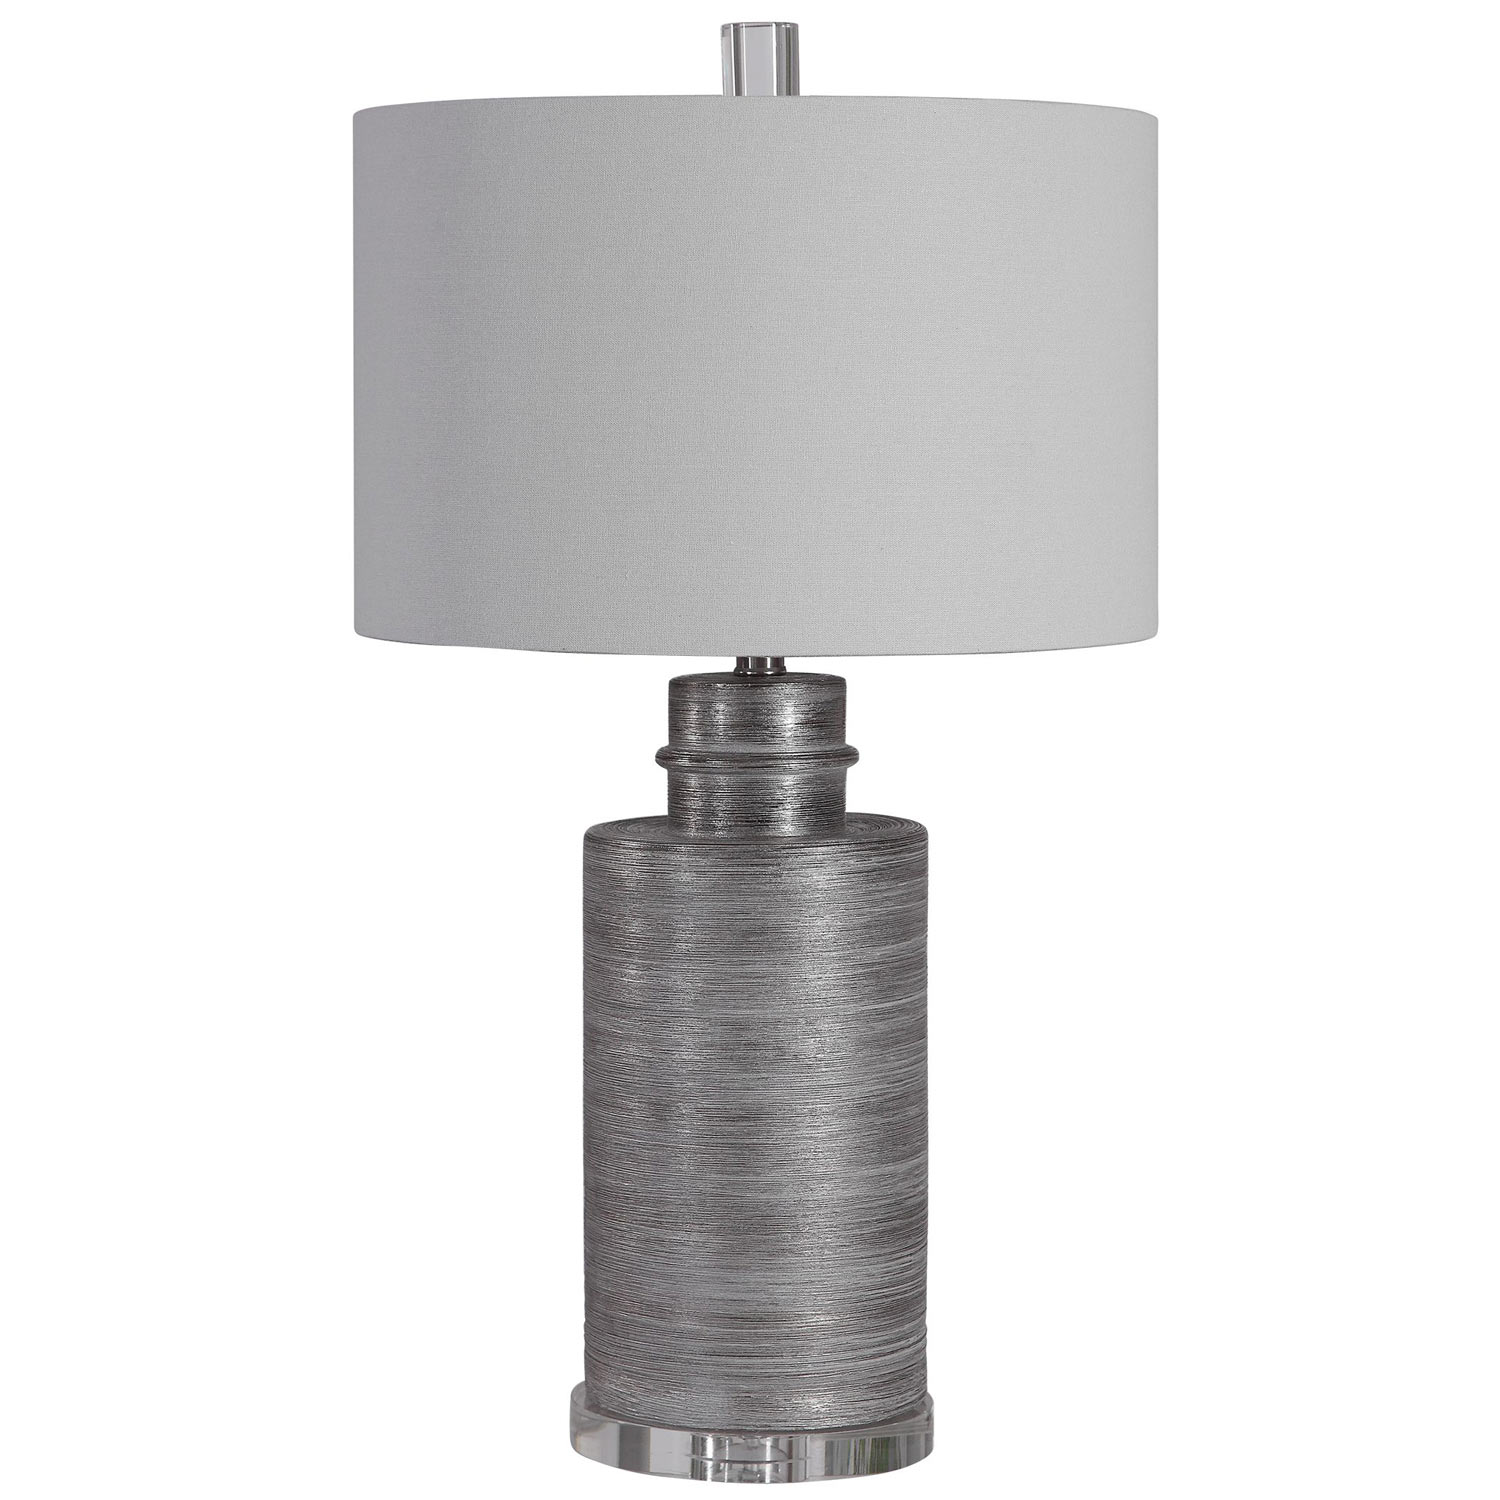 Uttermost Anitra Table Lamp - Metallic Silver